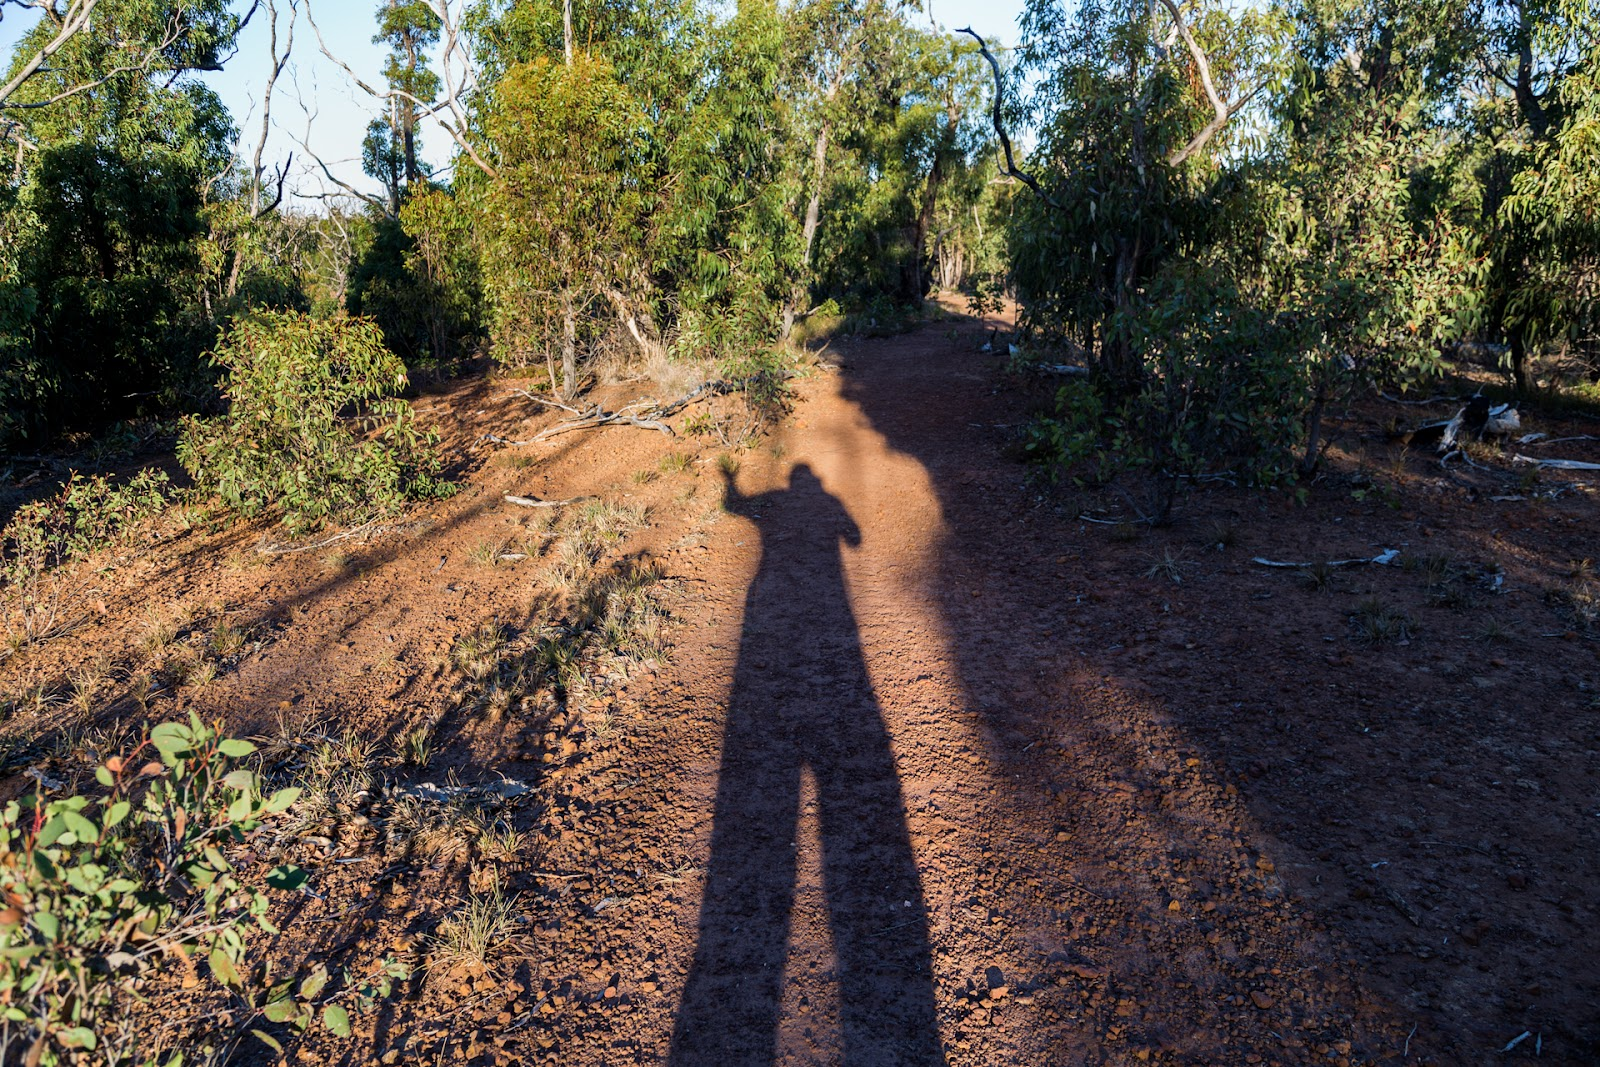 long shadow of person